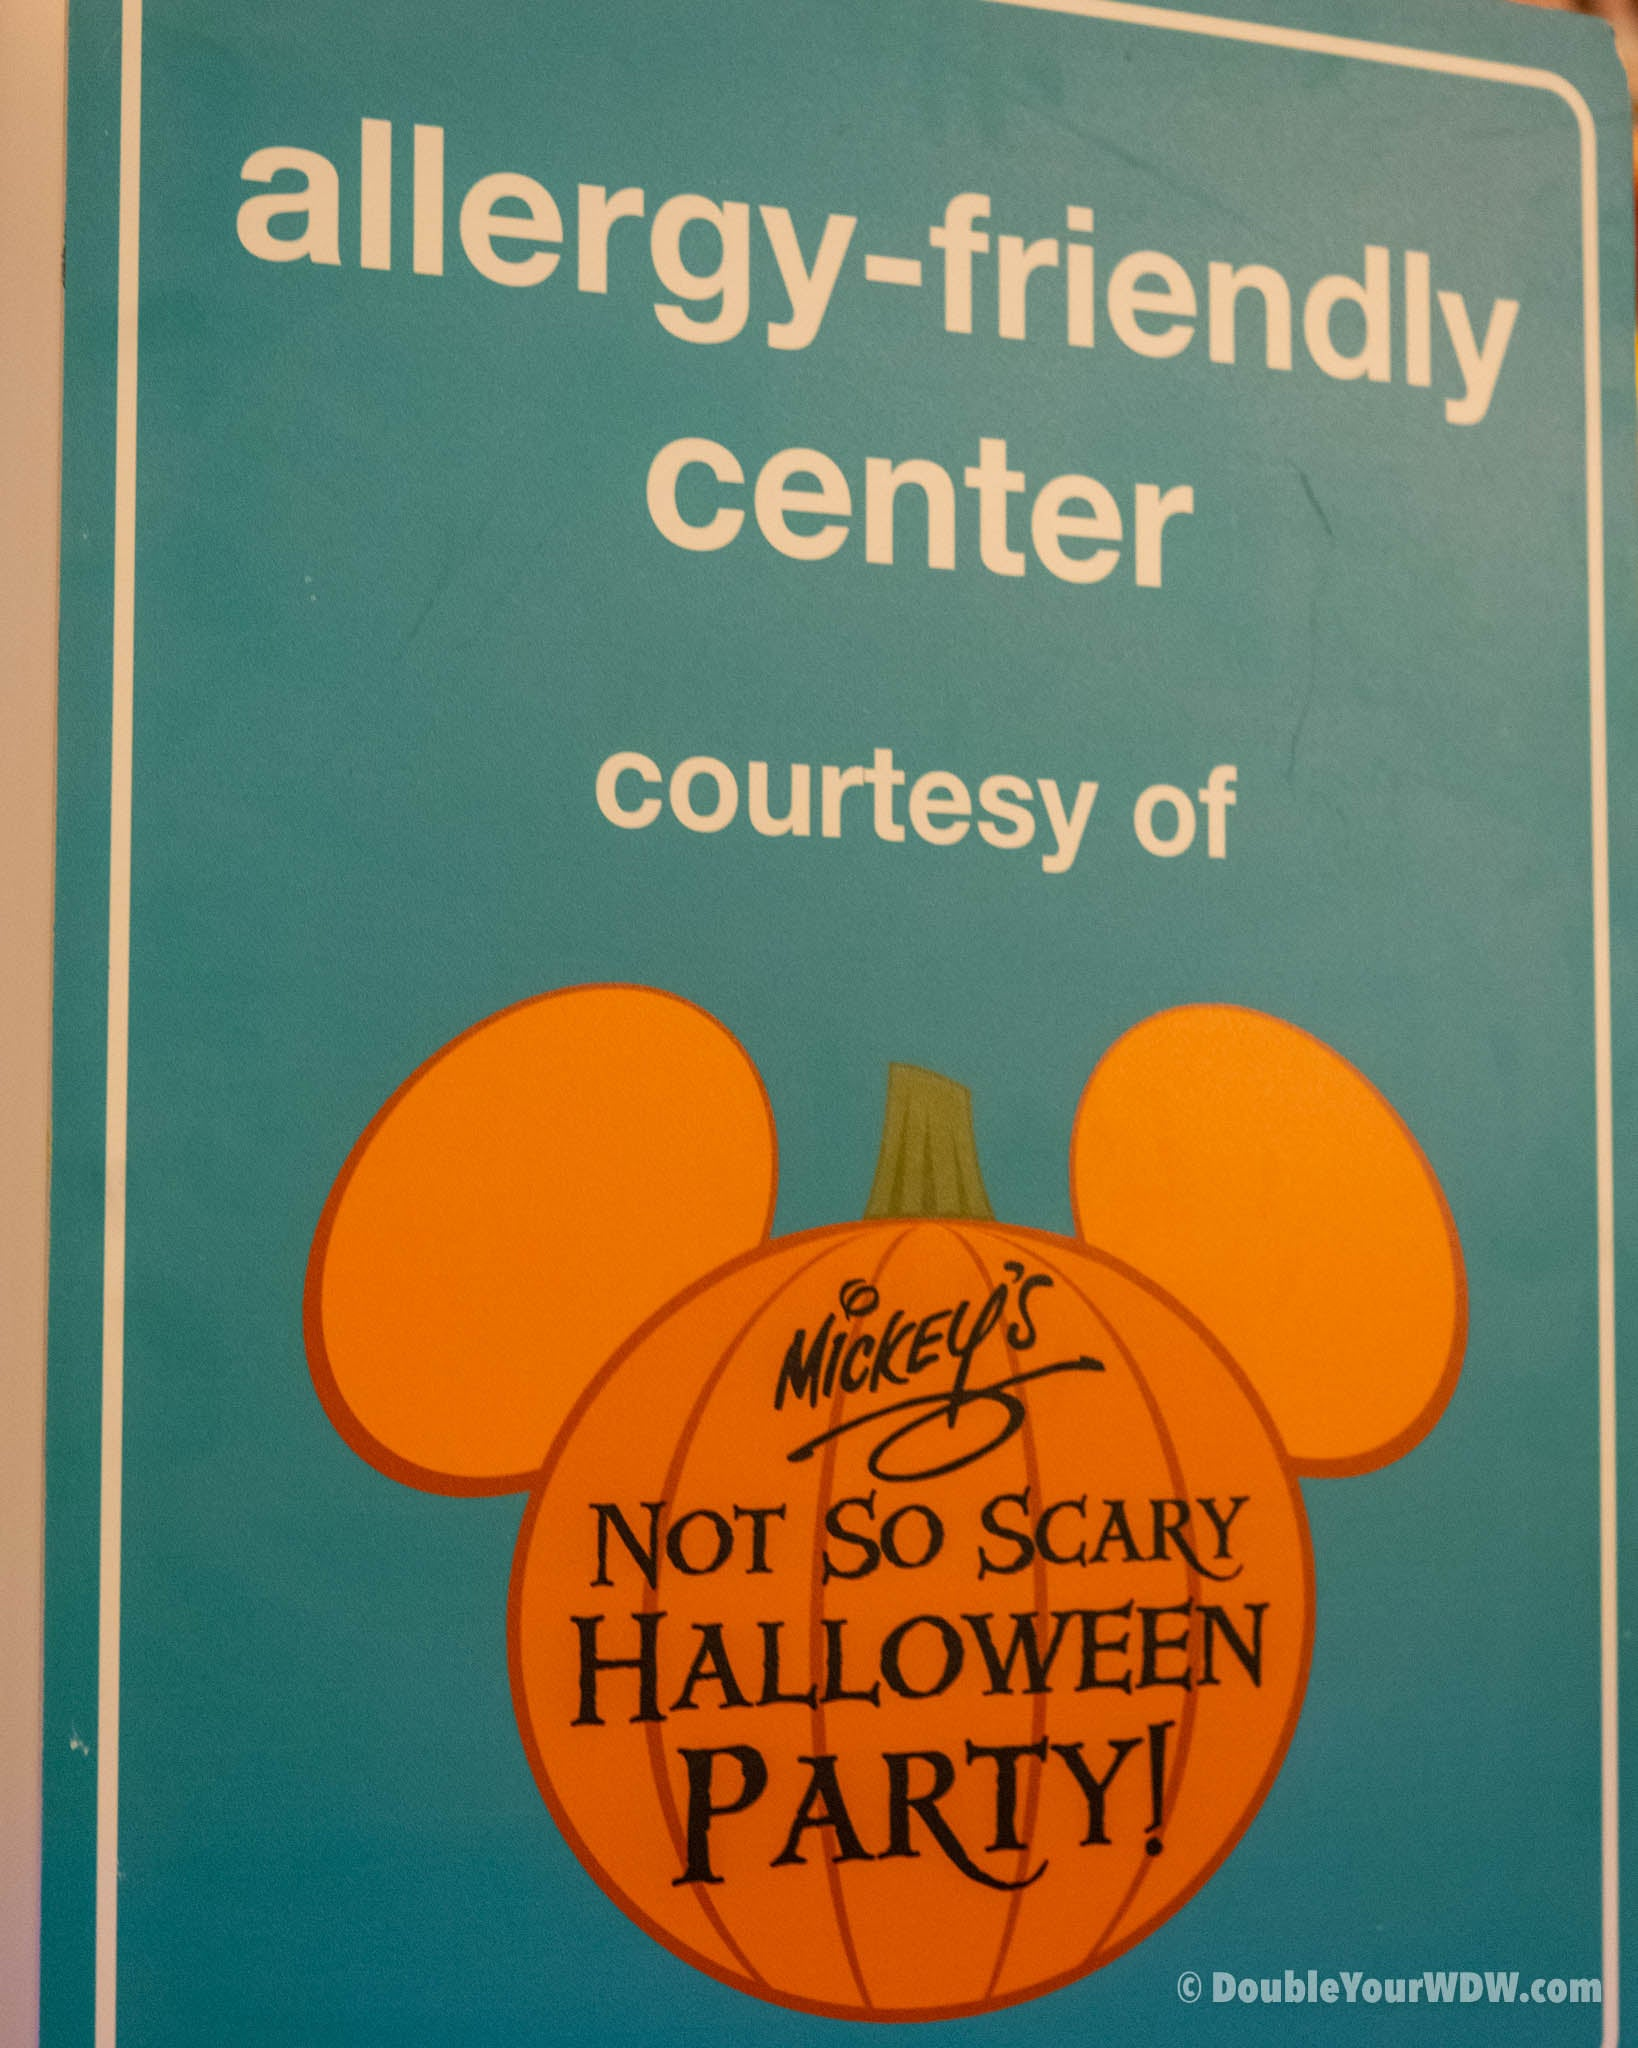 Allergy friendly center